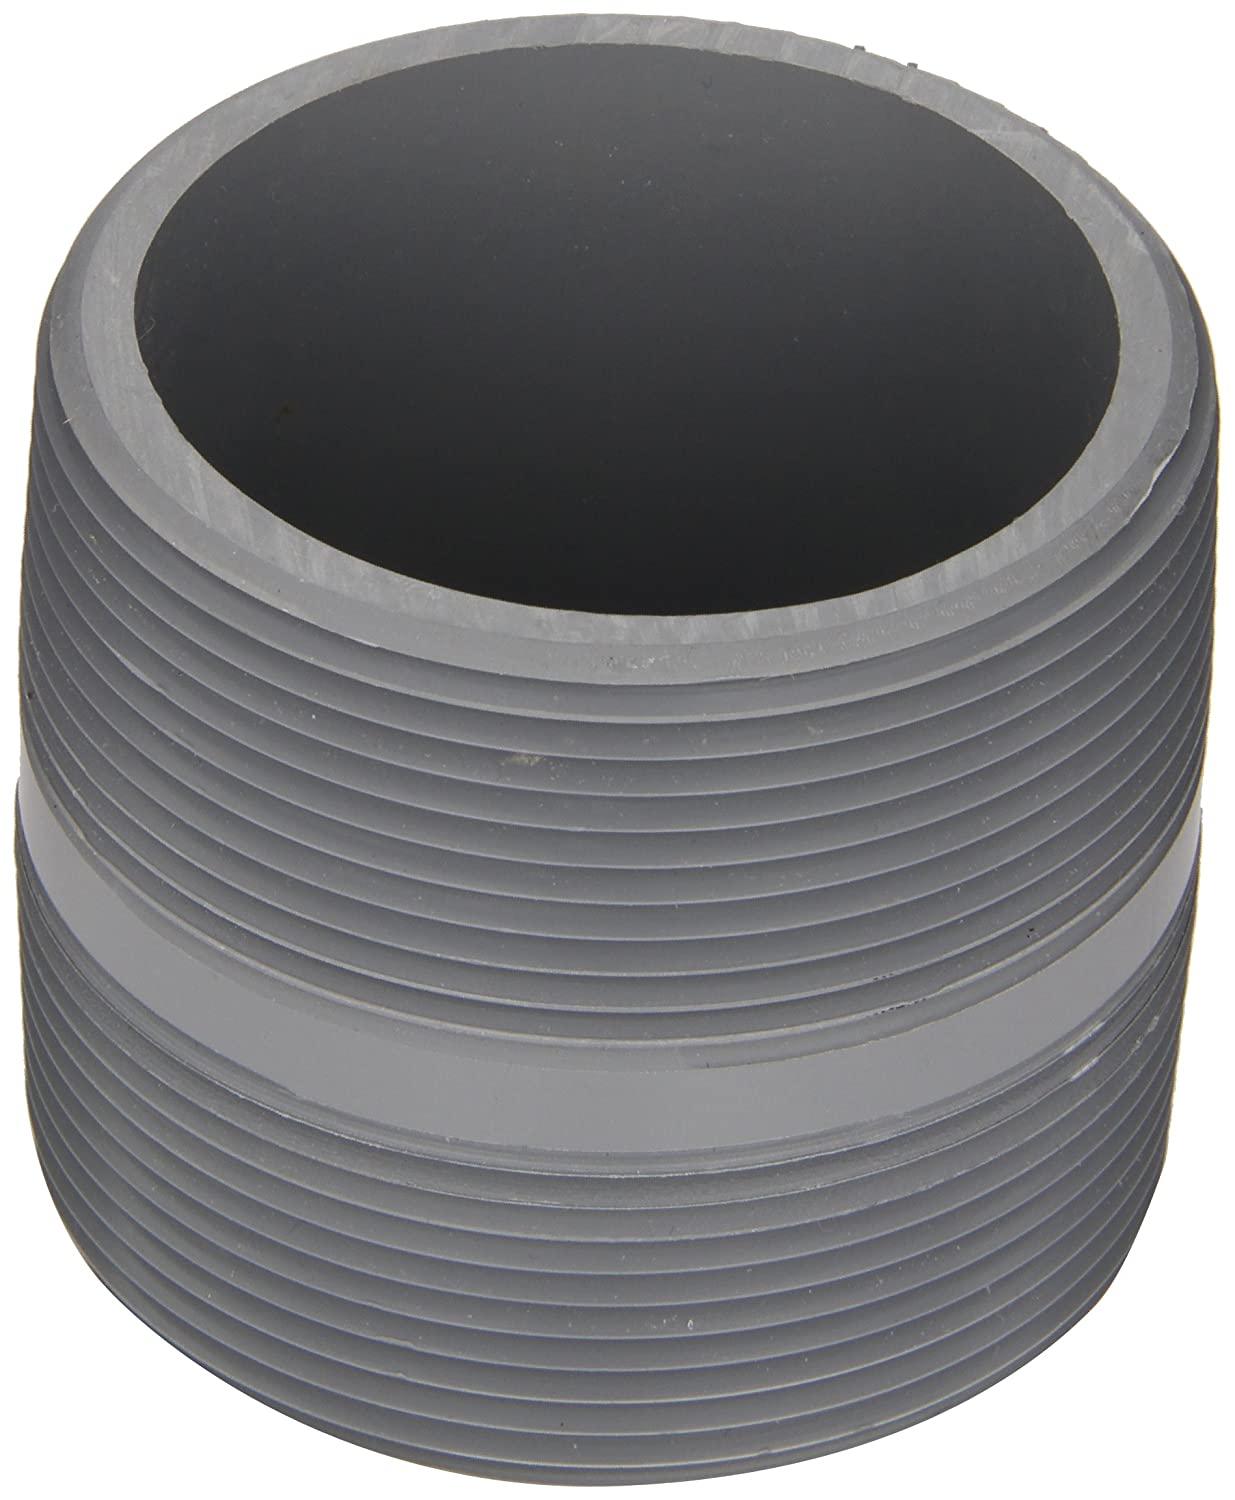 Spears 88-C Series CPVC Pipe Fitting, Nipple, Schedule 80, Gray, 1-1/4